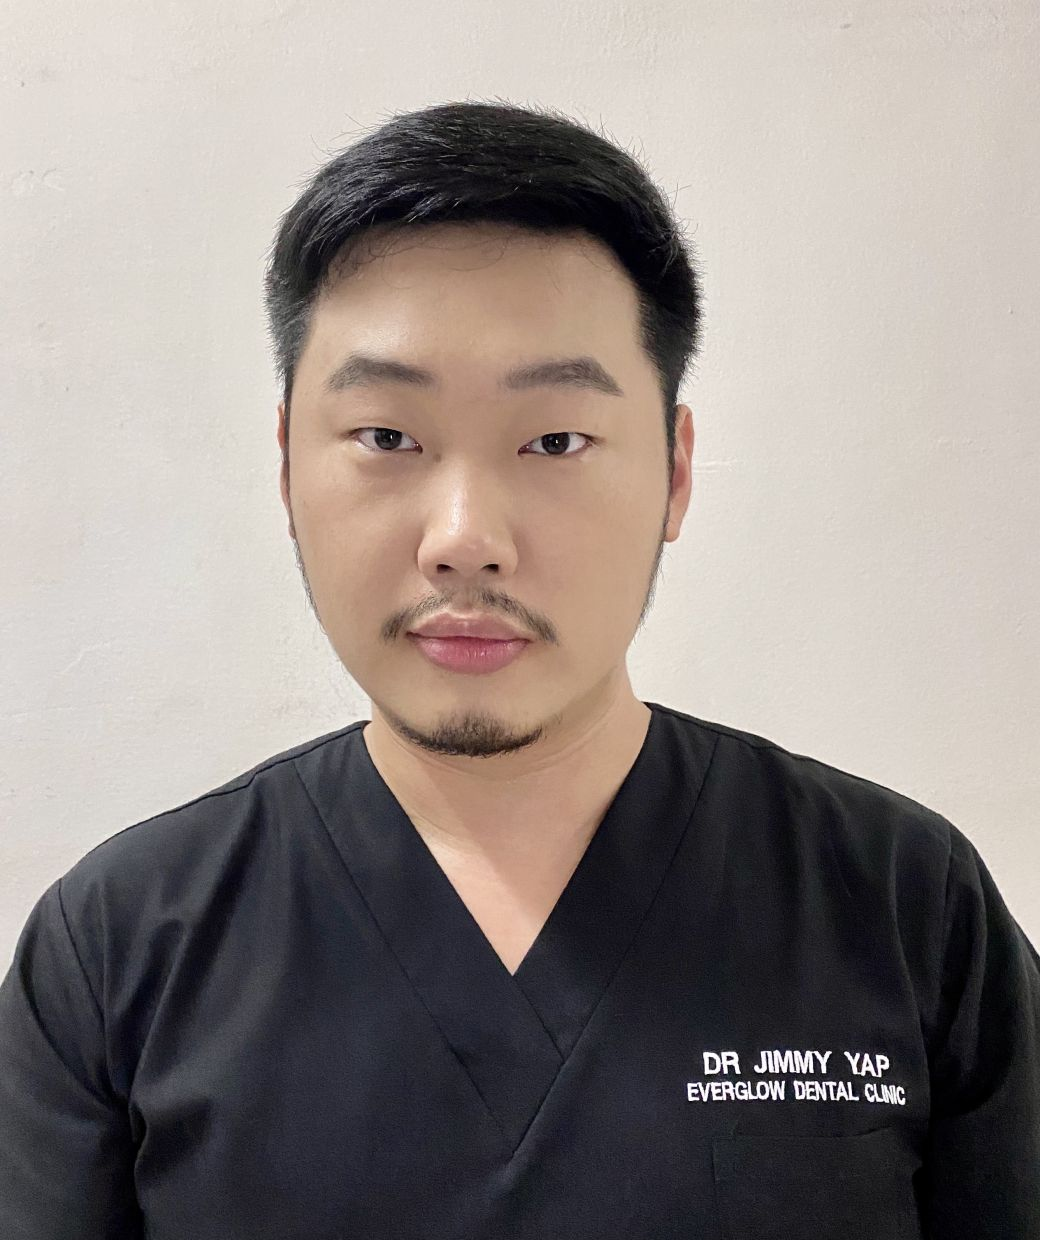 Principal dentist at Everglow Dental Clinic Dr Yap Jun Meng warned the public of the health risk from undergoing dental treatments by unqualified practitioners.